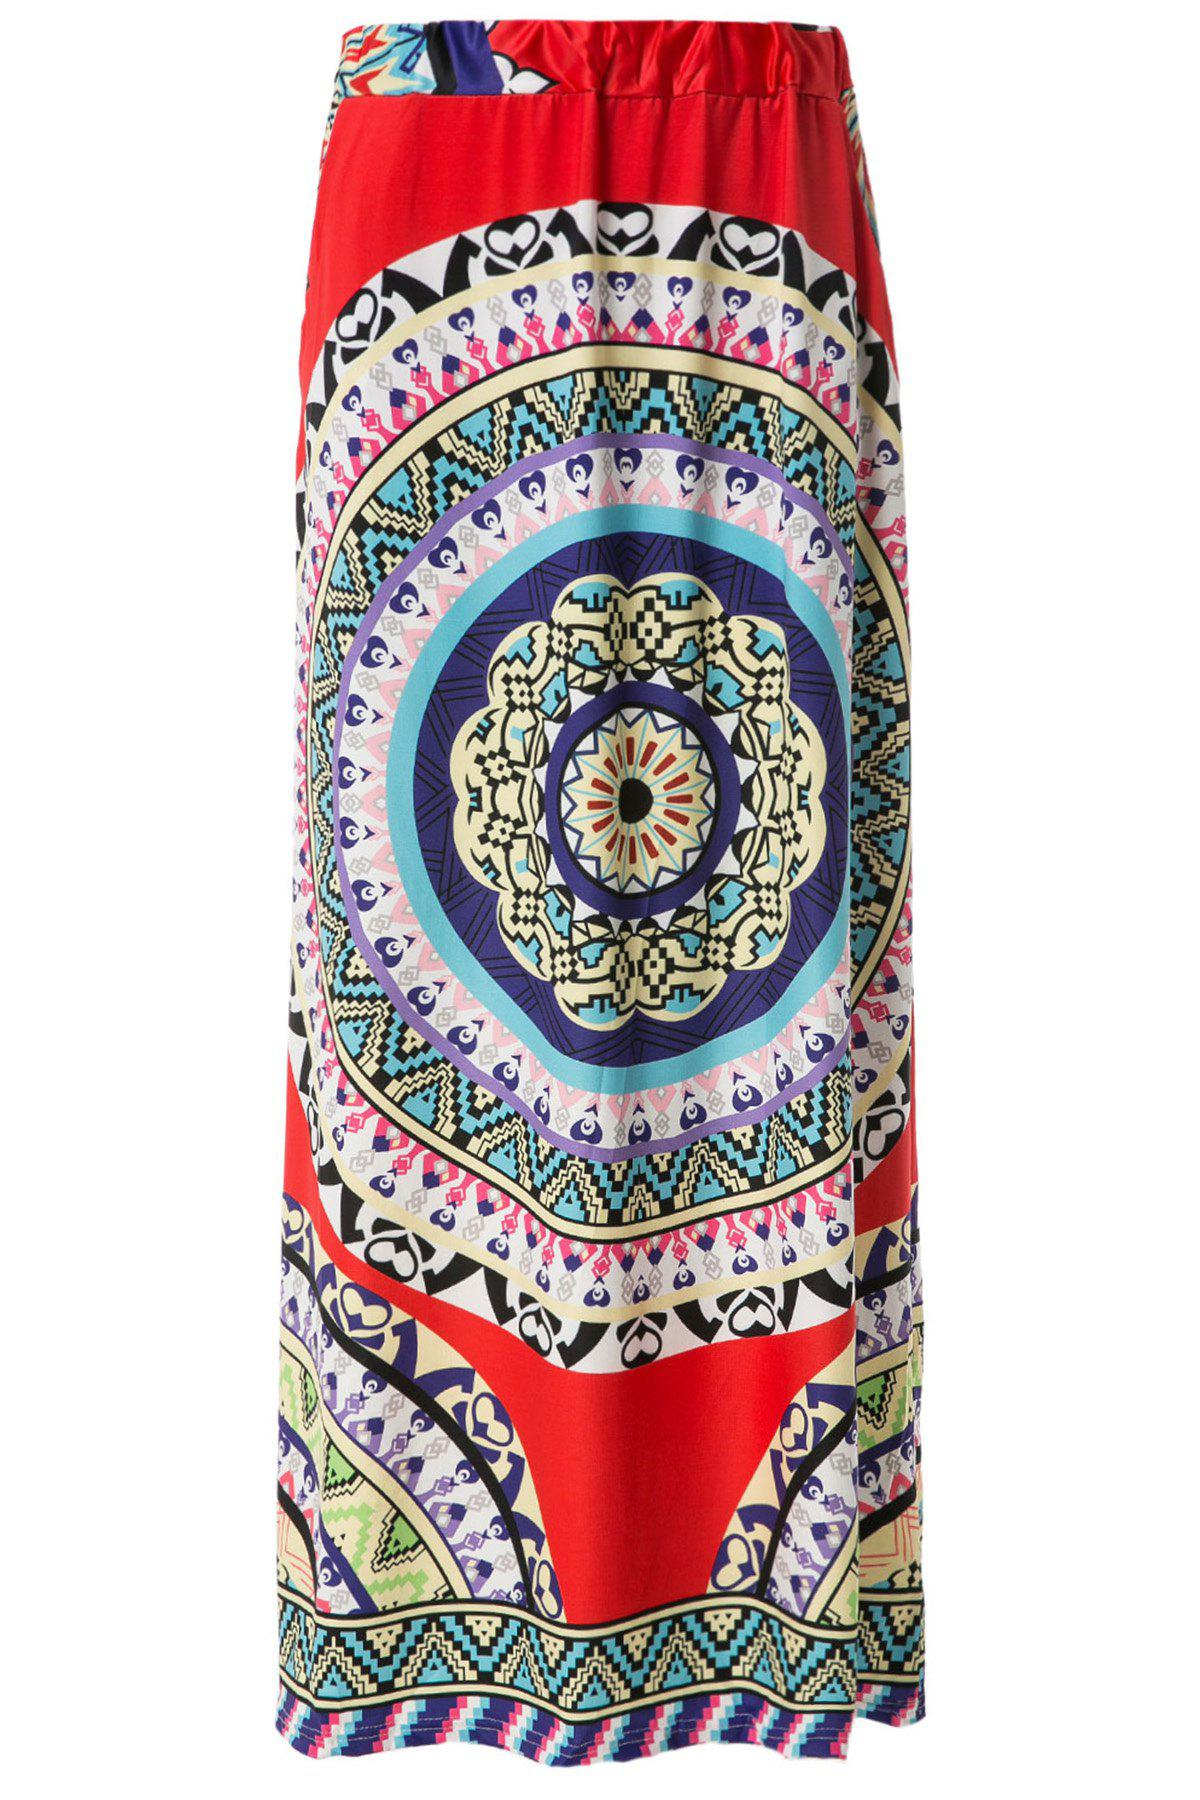 Bohemian Mid-Waisted Floor-Length Printed Skirt For Women - RED XL